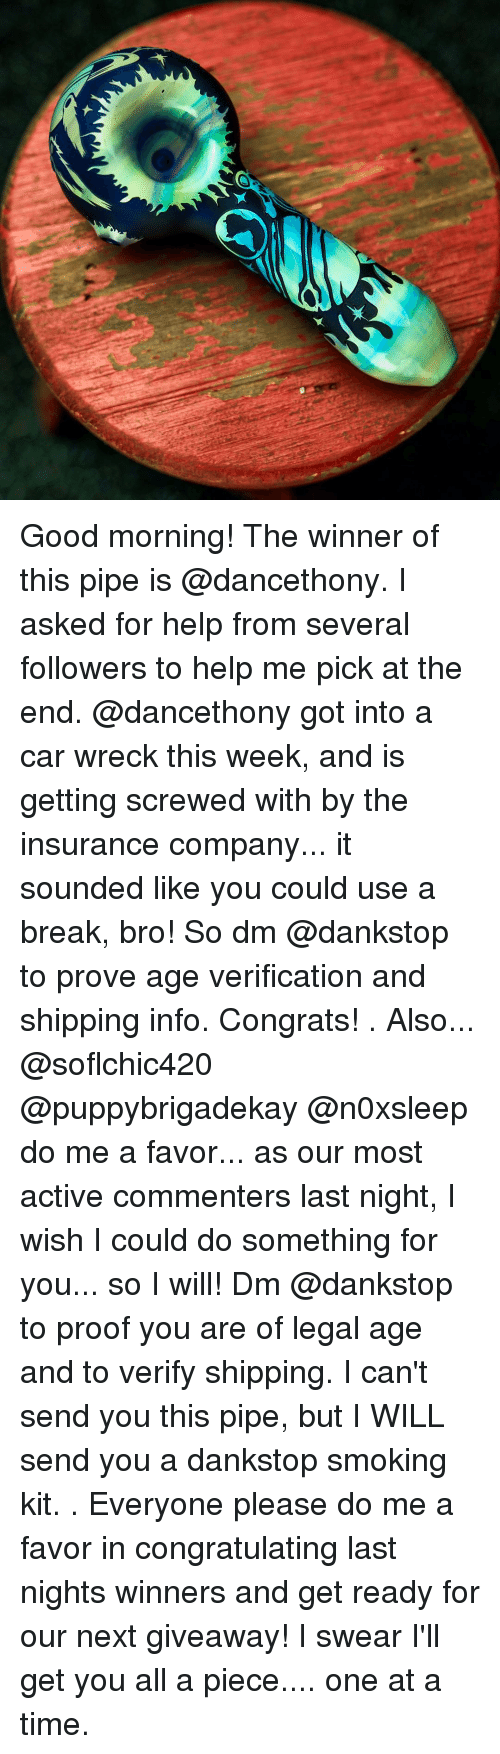 Memes, Congratulations, and 🤖: Good morning! The winner of this pipe is @dancethony. I asked for help from several followers to help me pick at the end. @dancethony got into a car wreck this week, and is getting screwed with by the insurance company... it sounded like you could use a break, bro! So dm @dankstop to prove age verification and shipping info. Congrats! . Also... @soflchic420 @puppybrigadekay @n0xsleep do me a favor... as our most active commenters last night, I wish I could do something for you... so I will! Dm @dankstop to proof you are of legal age and to verify shipping. I can't send you this pipe, but I WILL send you a dankstop smoking kit. . Everyone please do me a favor in congratulating last nights winners and get ready for our next giveaway! I swear I'll get you all a piece.... one at a time.